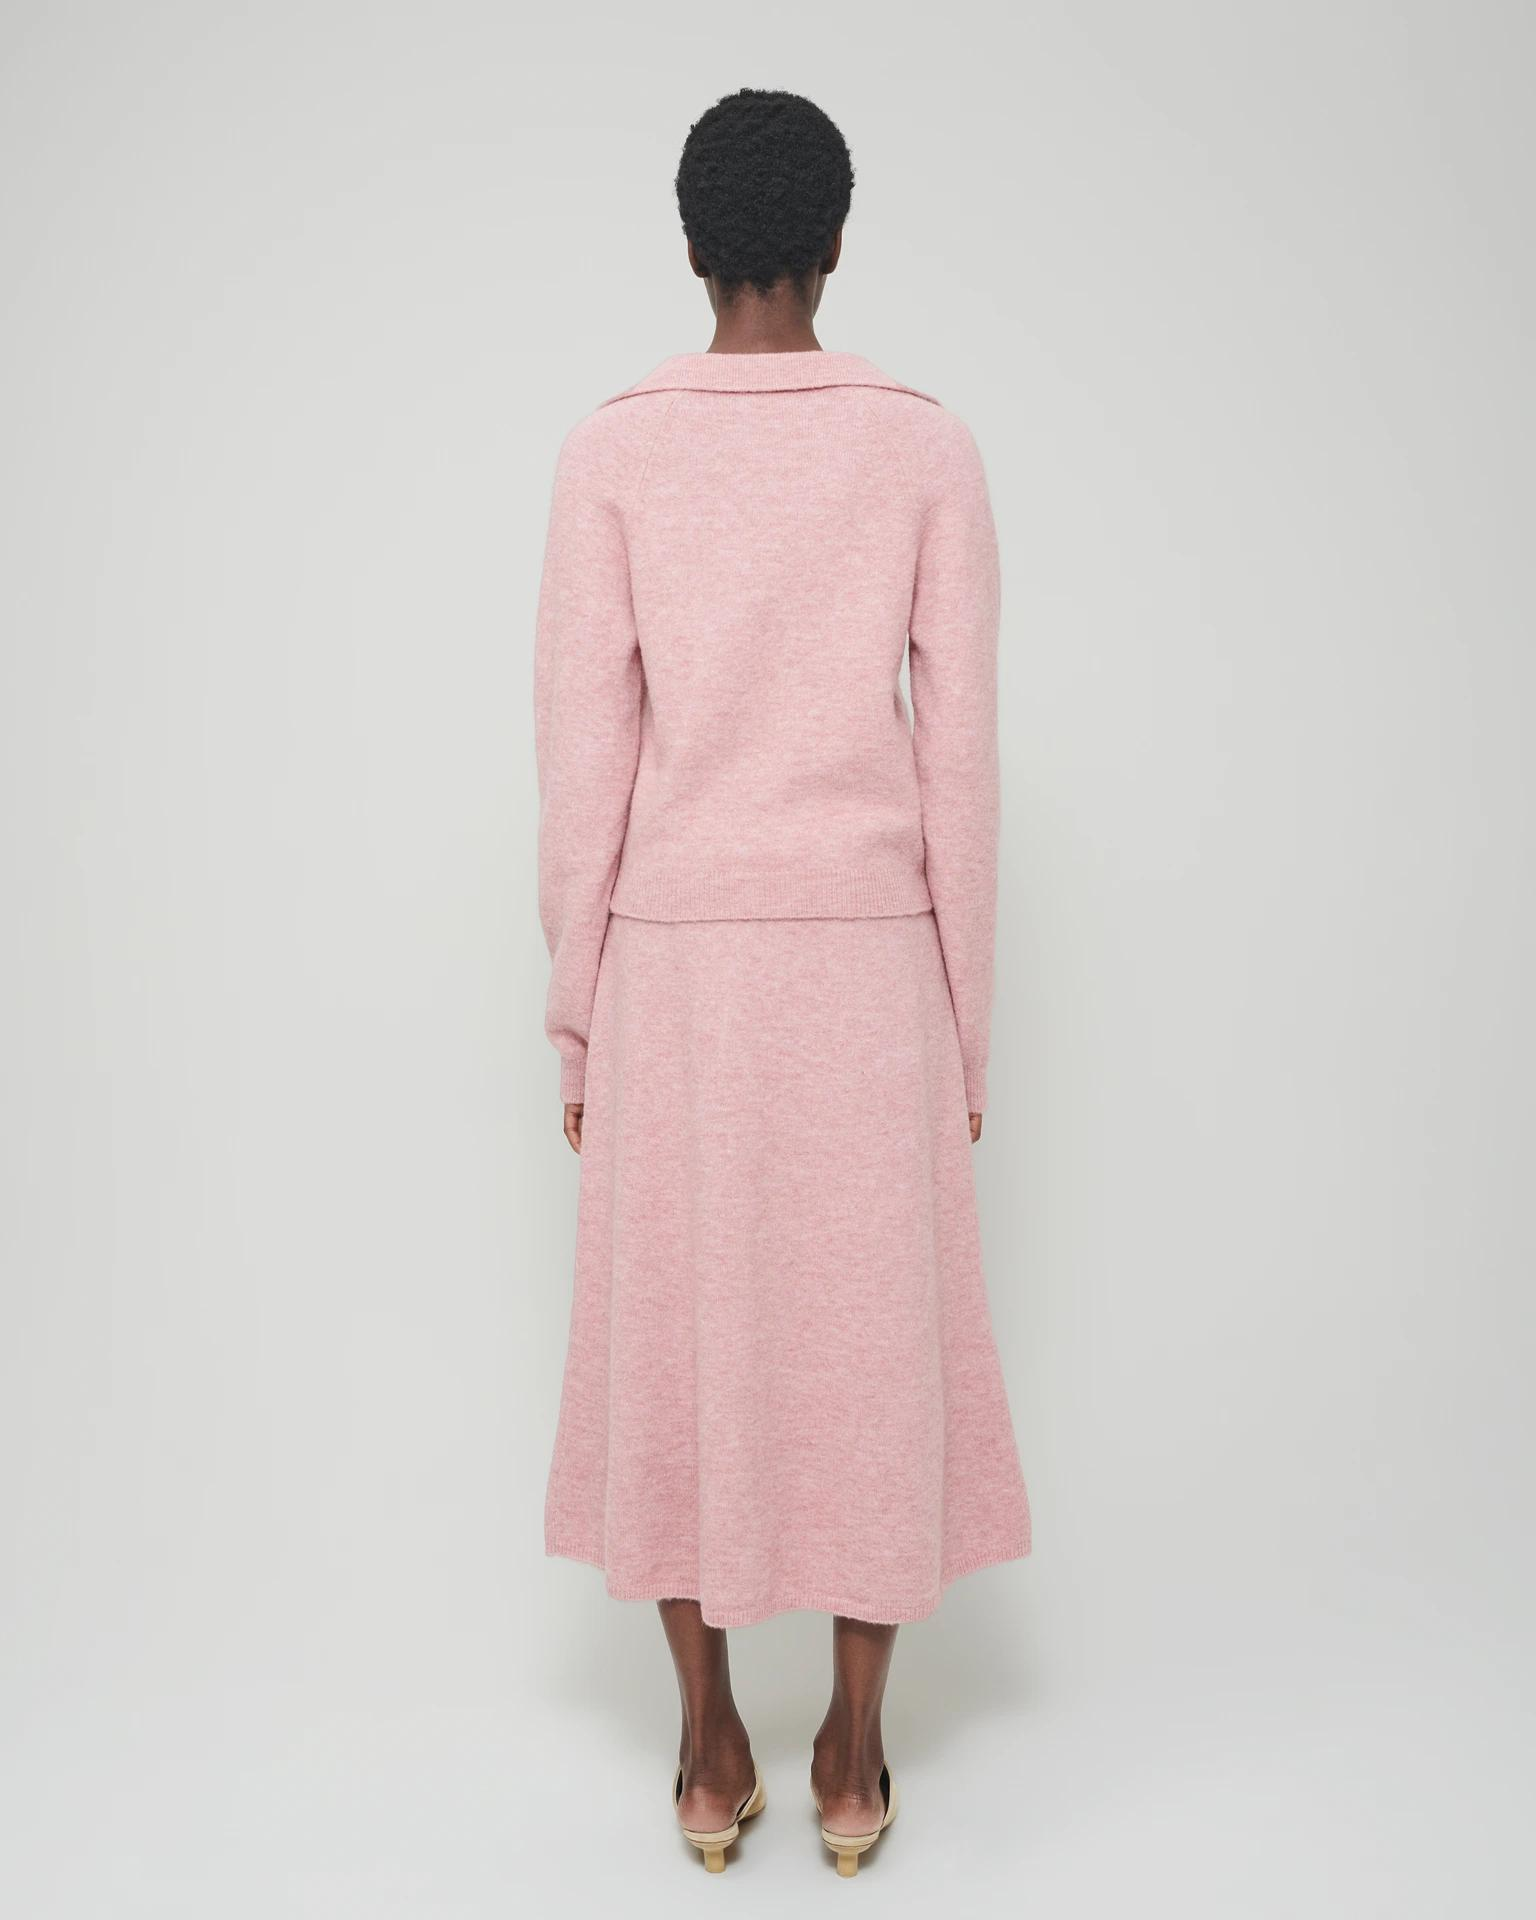 CADE - Fluffy-knit cardigan - Washed pink 1